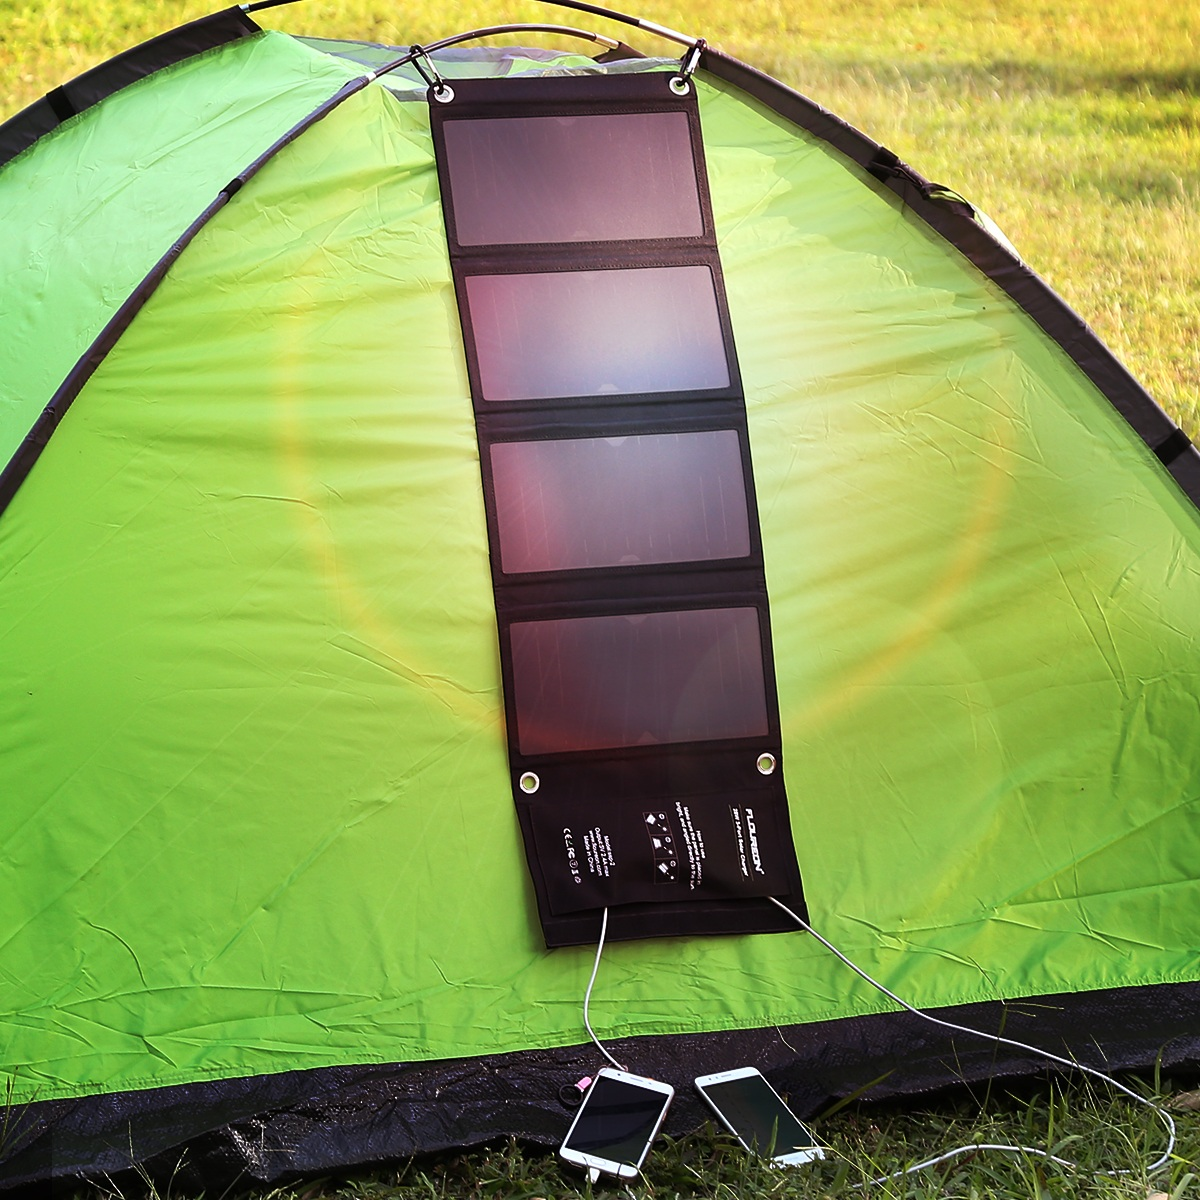 FLOUREON 28W Foldable Waterproof Solar Panel Charger Mobile Power Bank for Smartphones Tablets Triple USB Ports Outdoor 8